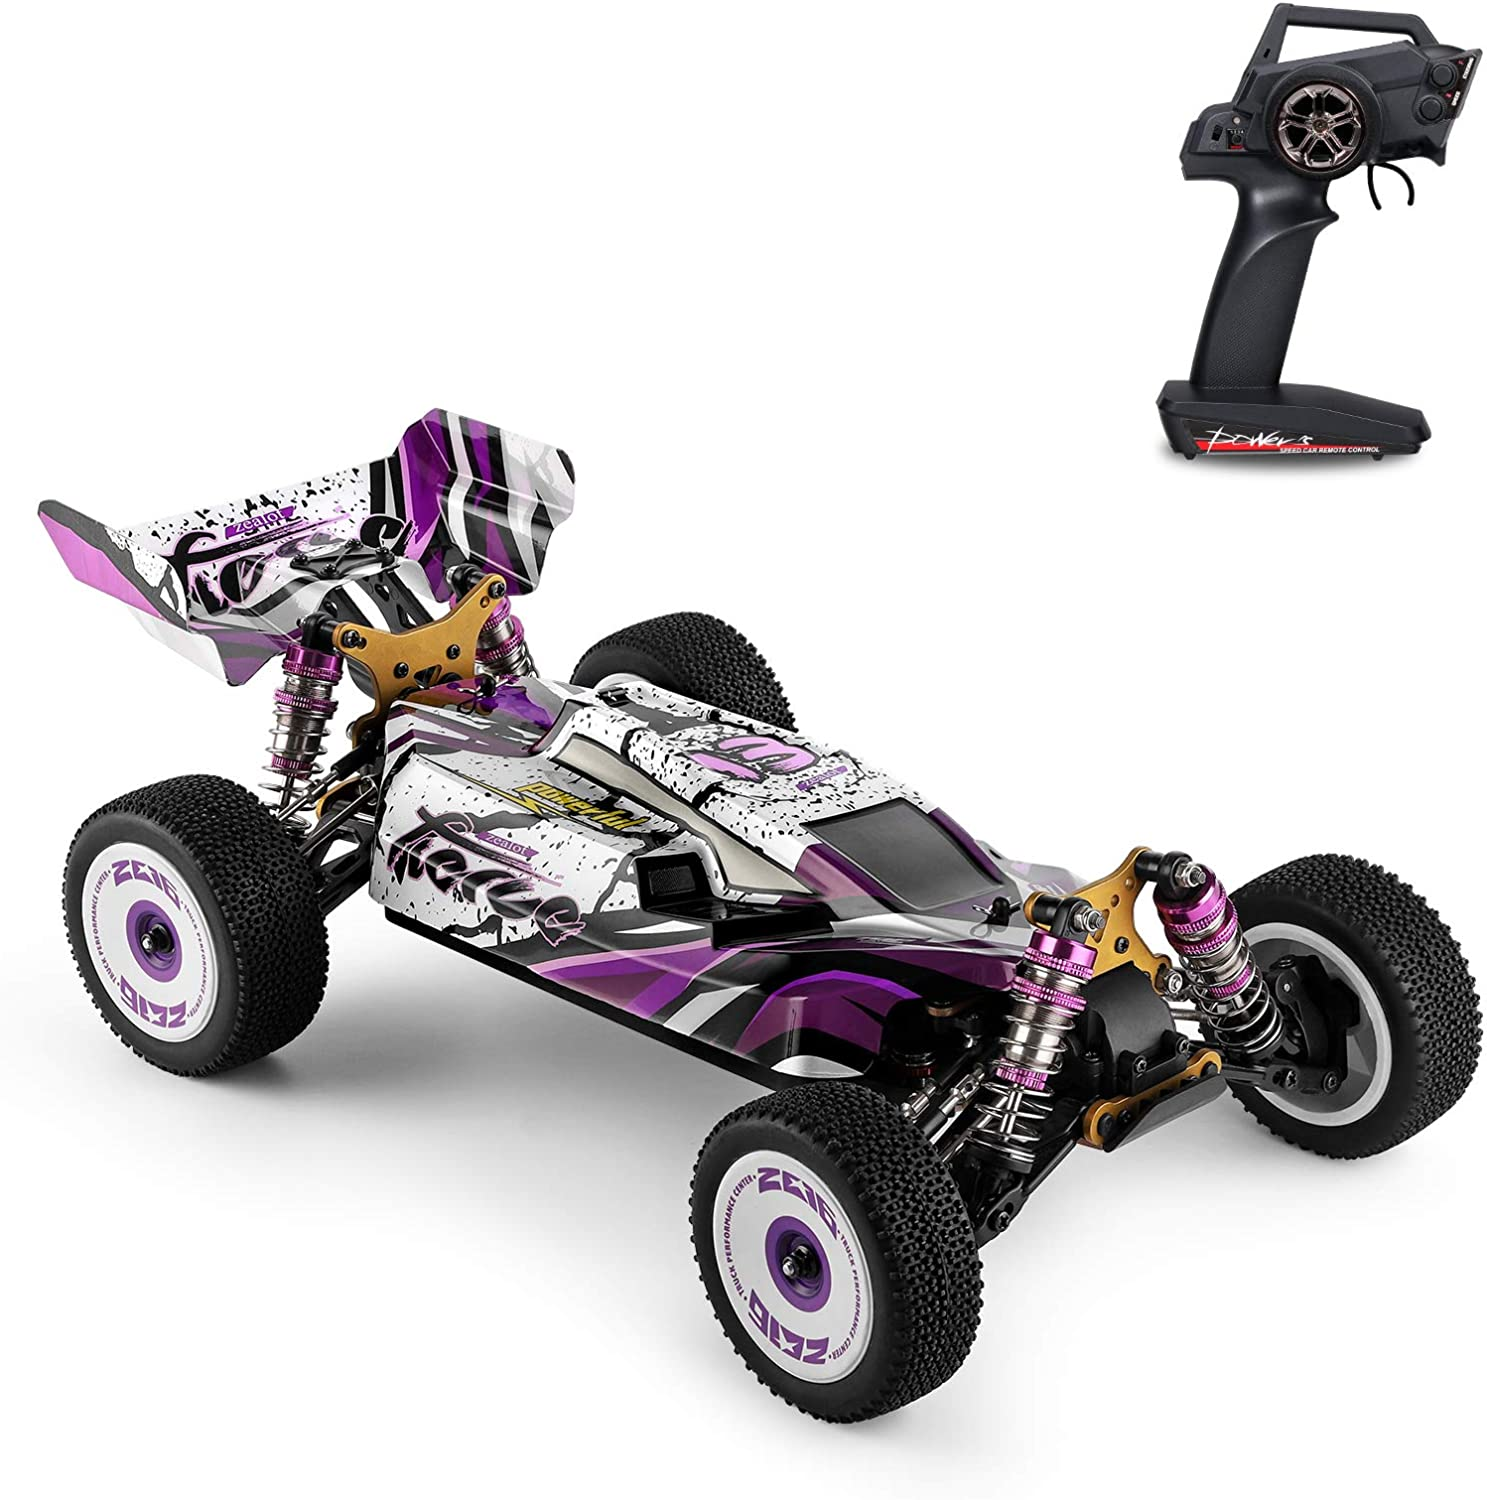 GoolRC WLtoys 124019 RC Car 1 Remote 12 2.4GHz Control Translated Opening large release sale Scale Ca